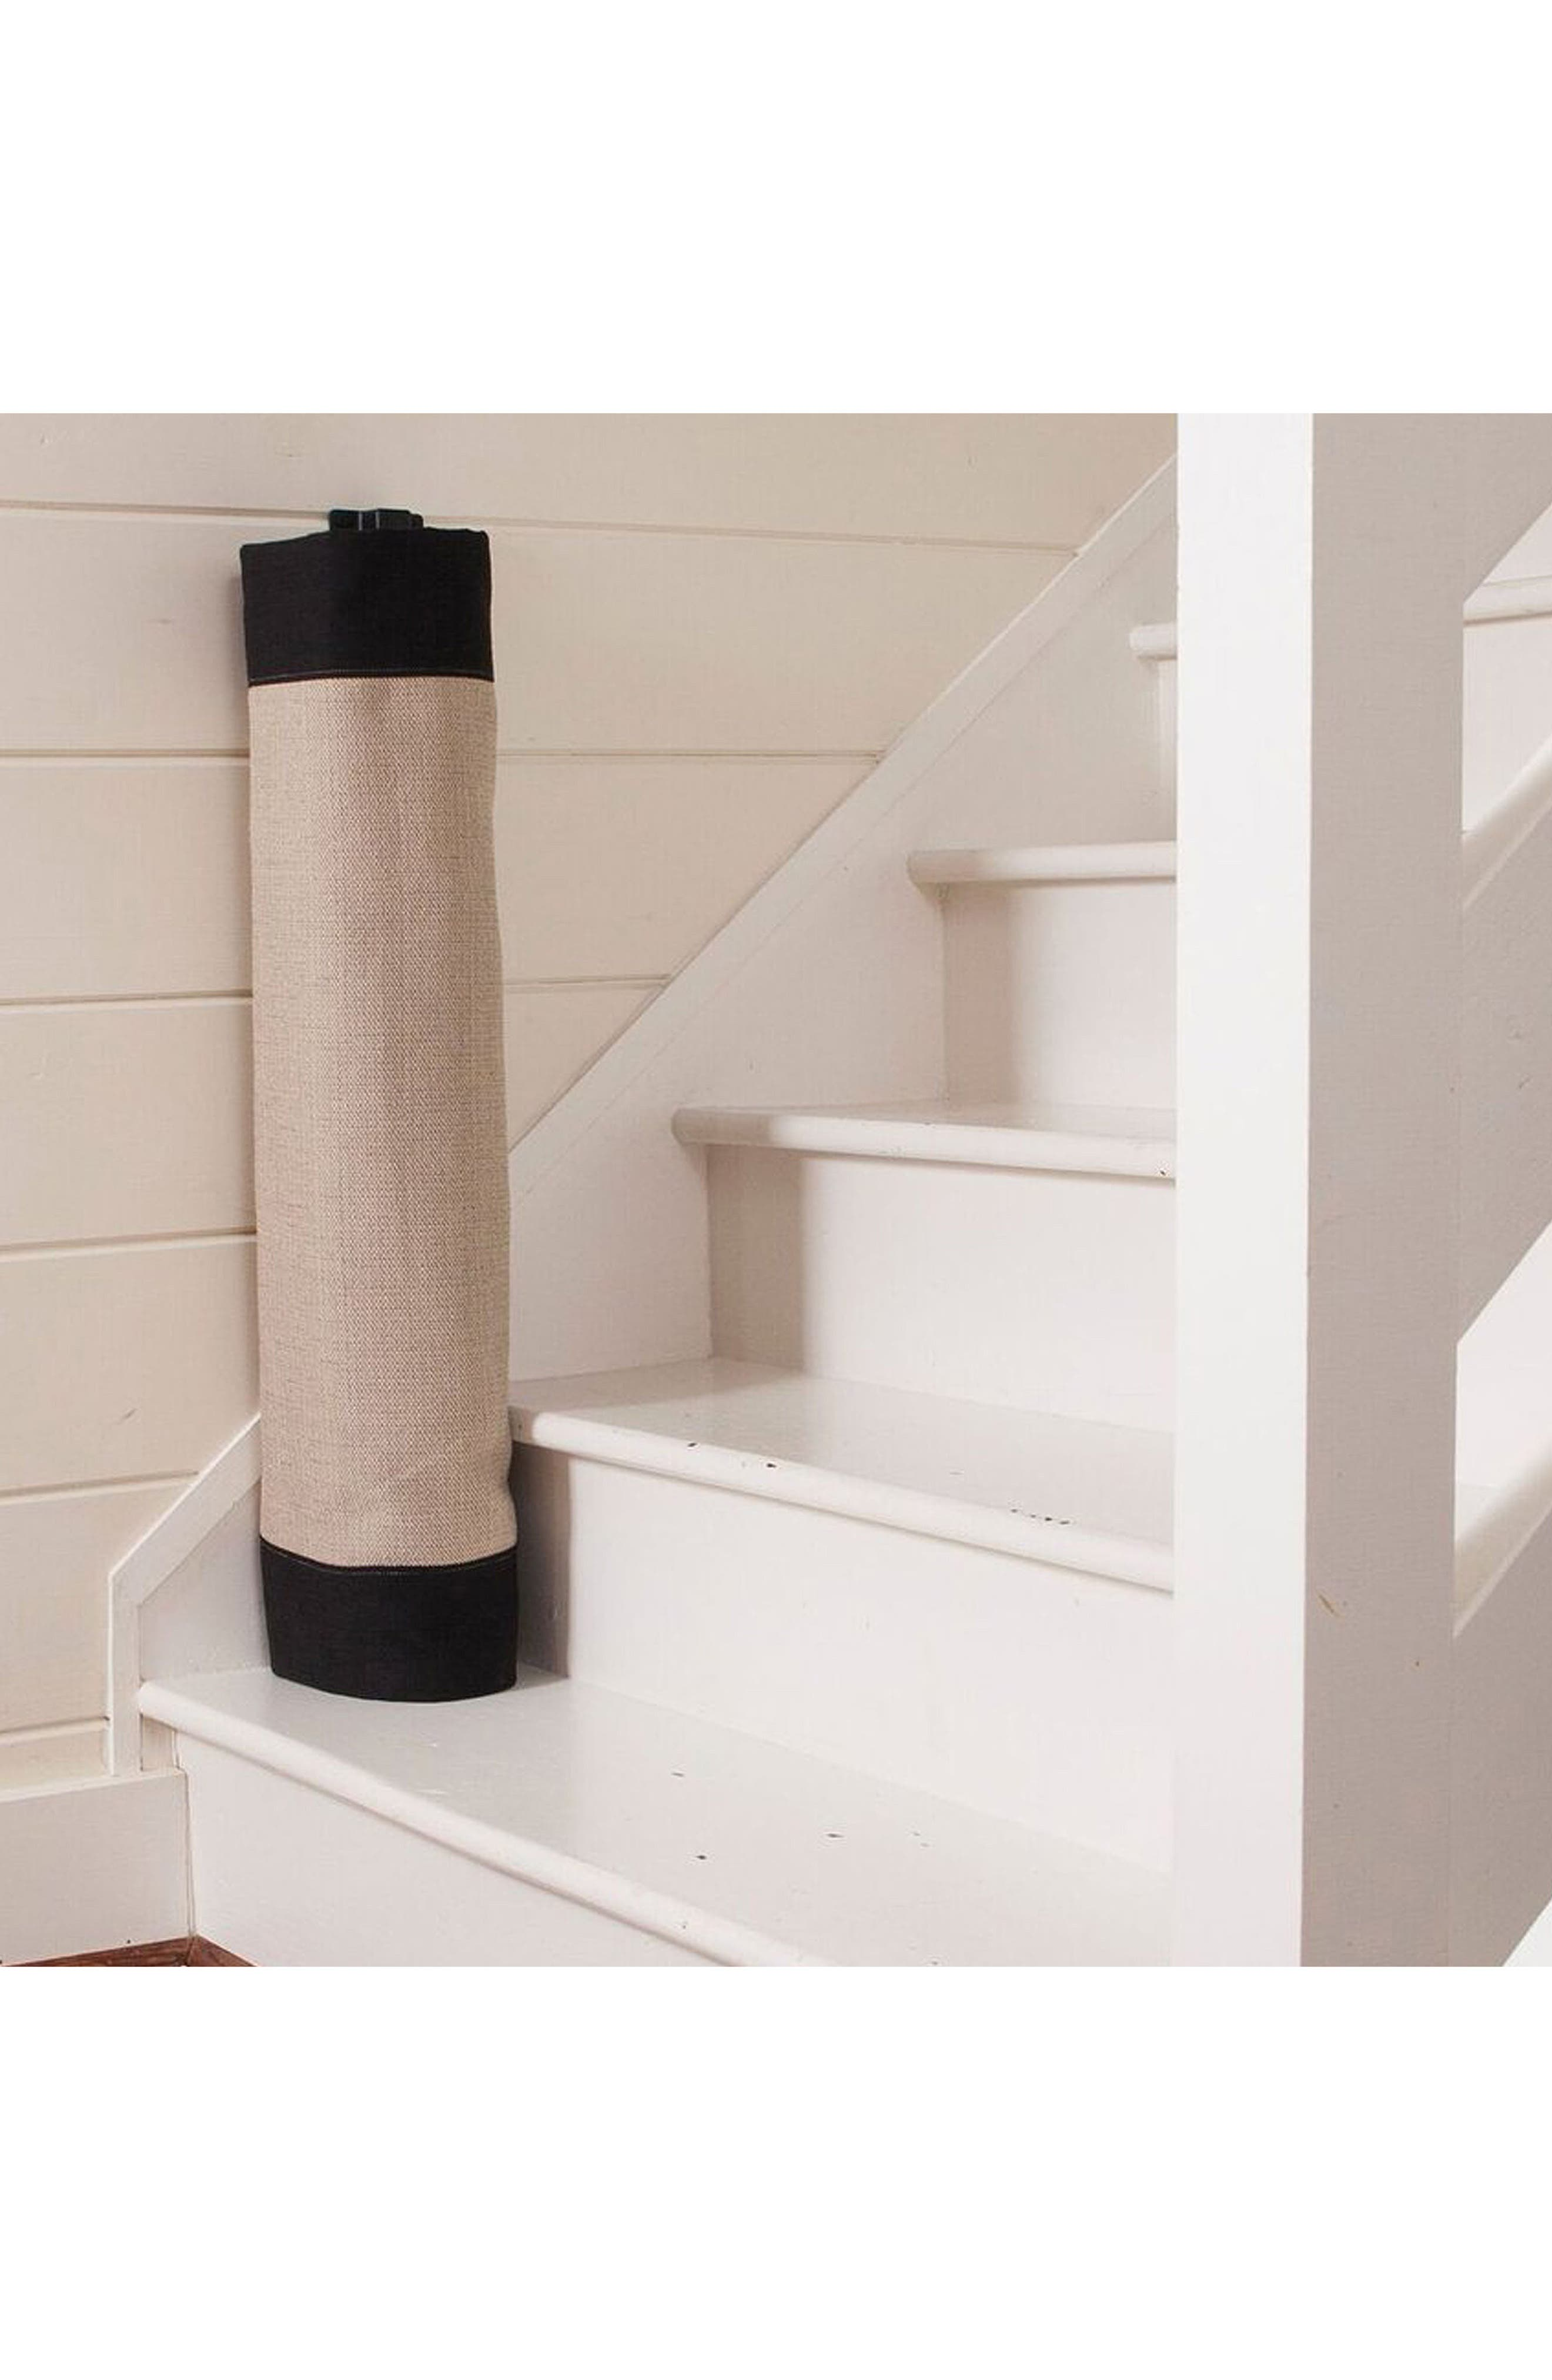 Wall to Banister Regular Width Safety Gate,                             Alternate thumbnail 3, color,                             Black And Tan